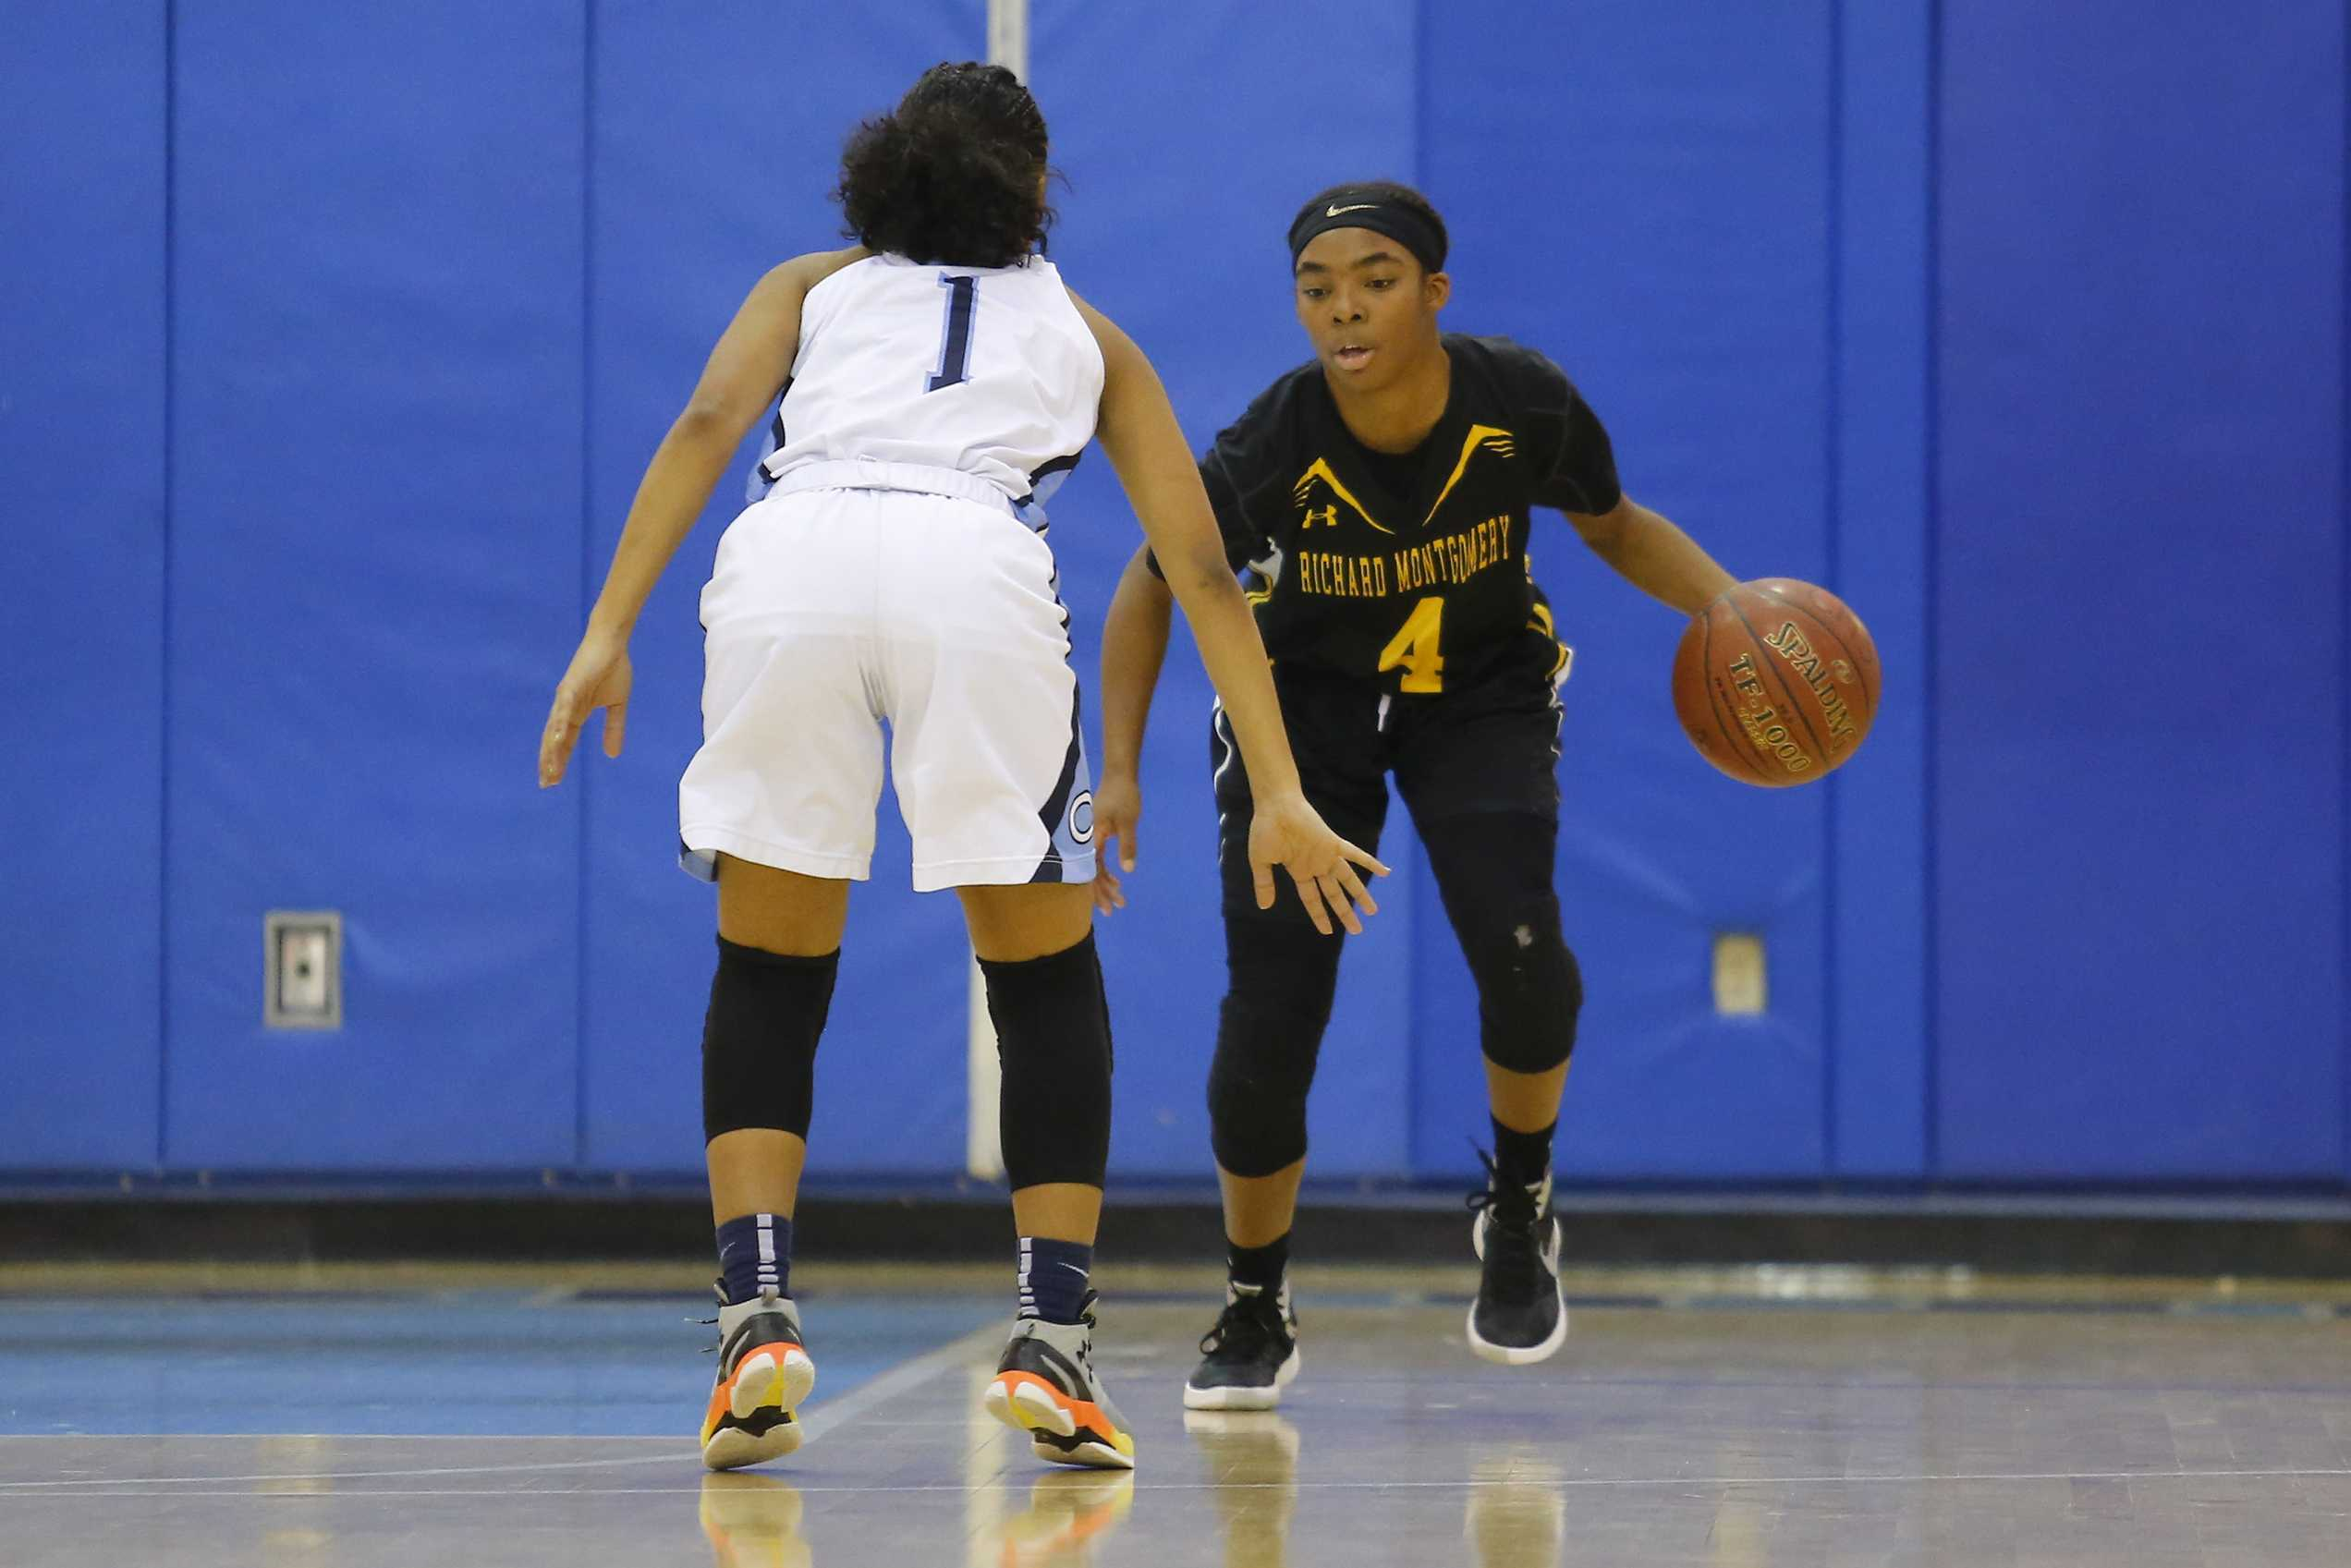 Girls basketball opens up season with narrow 56-51 win over Walter Johnson